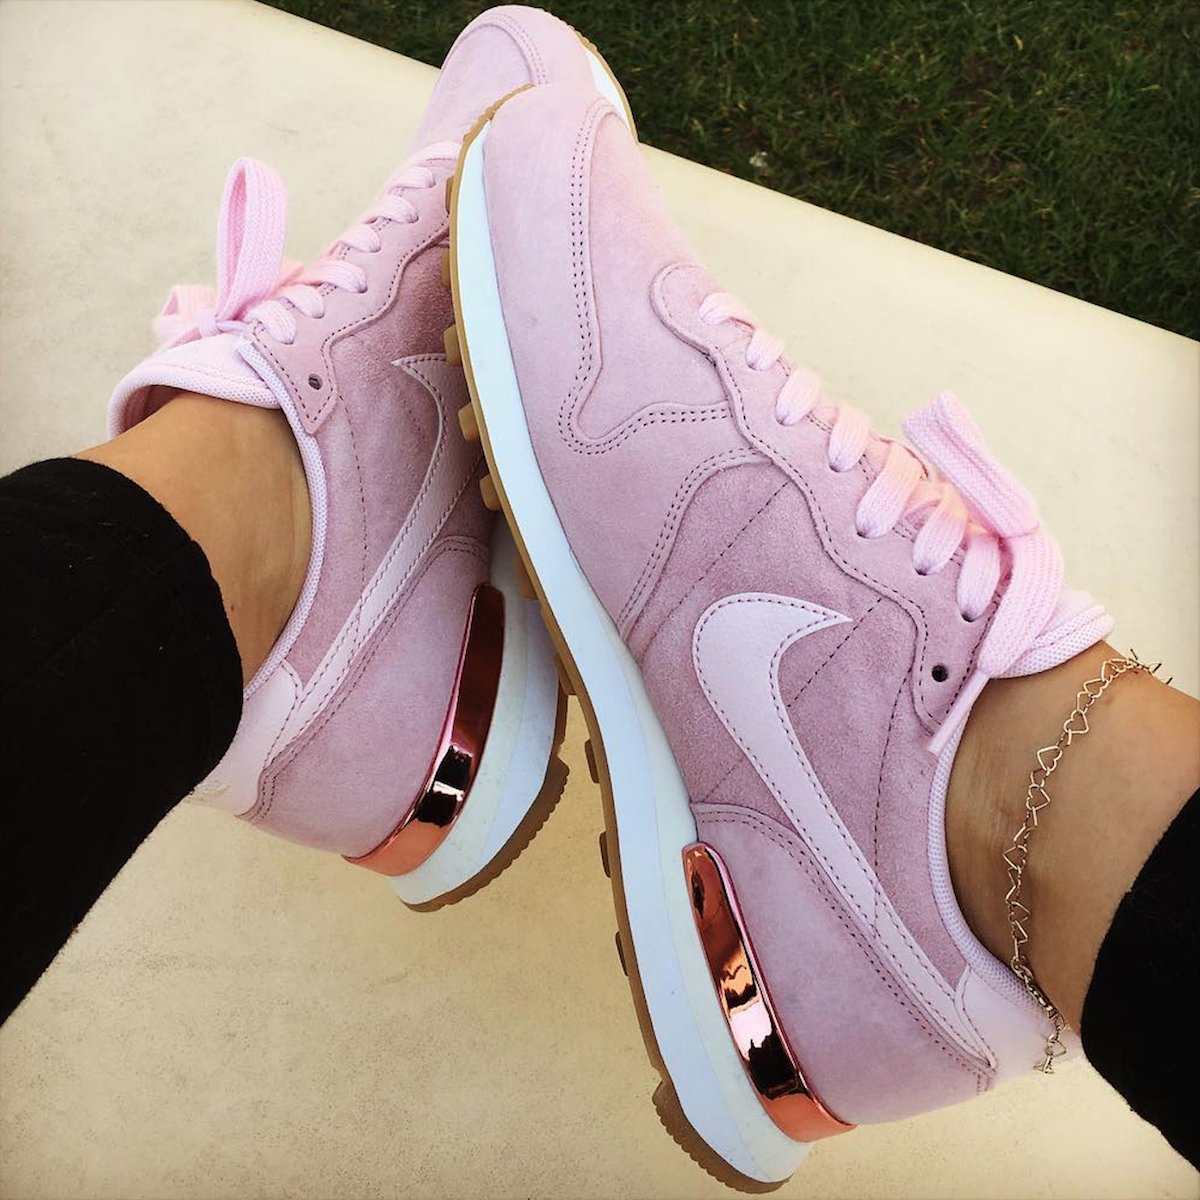 low priced 2053b 85eb4 ... purchase exclusive nike prism pink internationalist womens fashion  shoes on carousell 7c9cd 1fa8c